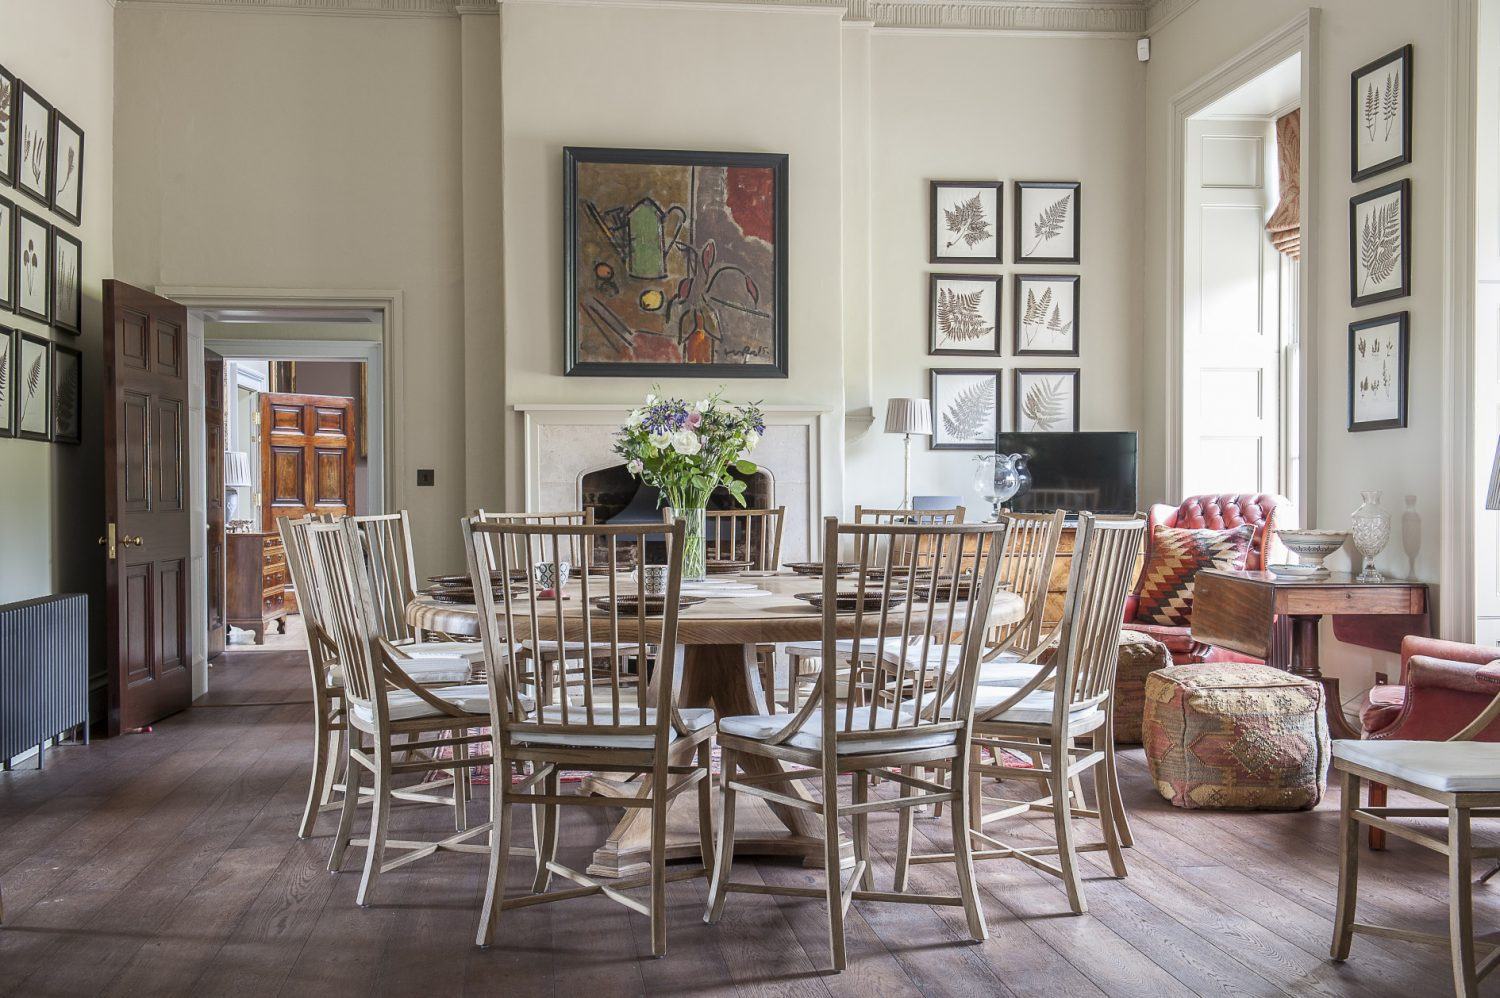 Light pours into the breakfast room through two floor-to-ceiling windows. The oval table was designed by Marcus and Francesca and made to order by the project's main contractors, BW May. The stone surround was custom made based on a fireplace in the cellar, with the FitzWalter coat of arms added.The painting over it is by Luke Hannam from McCully & Crane Art, Rye. Marcus found the wonderful collection of leaf pressings in the attic